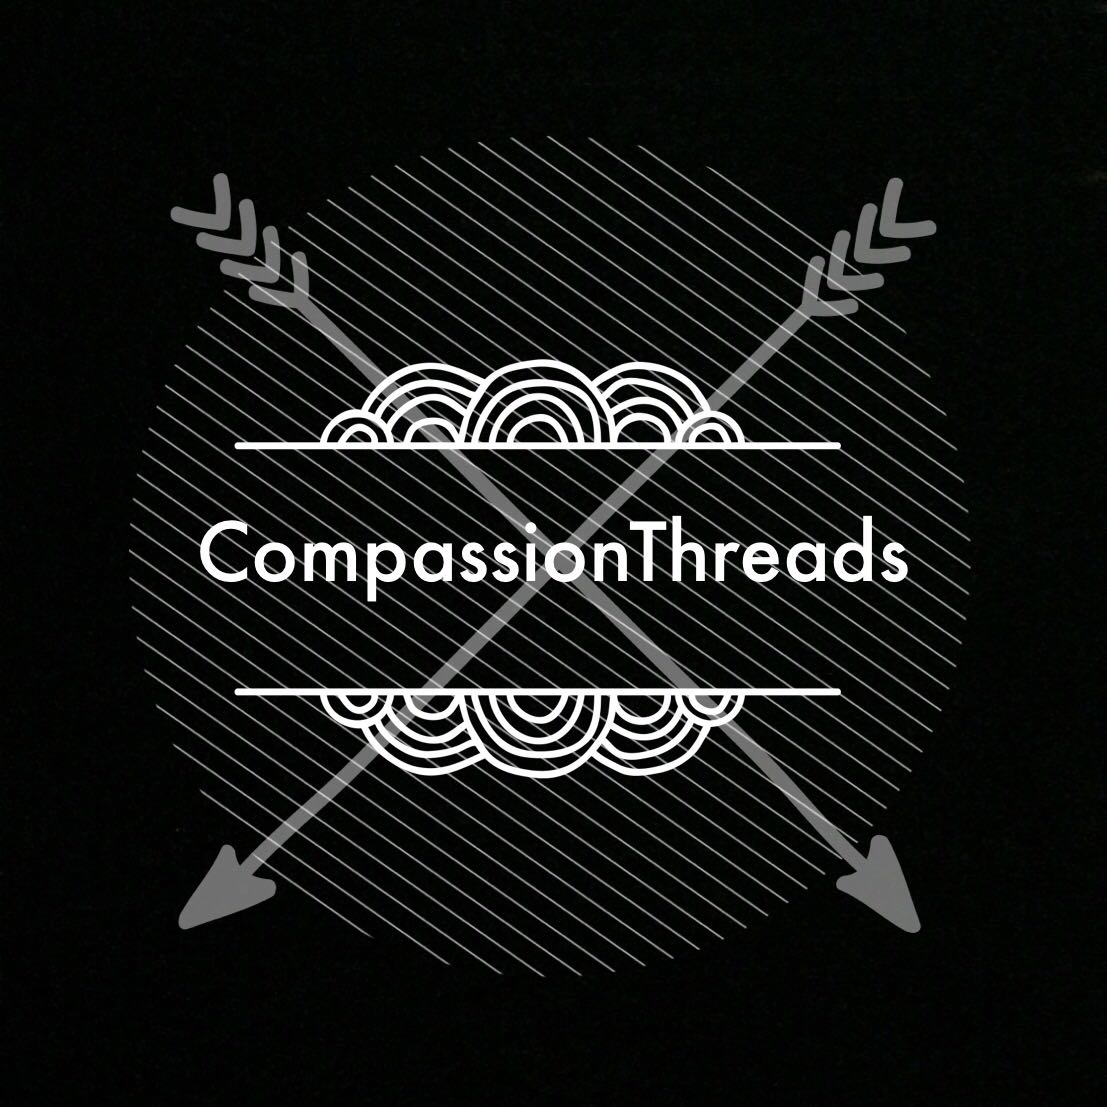 compassionthreads